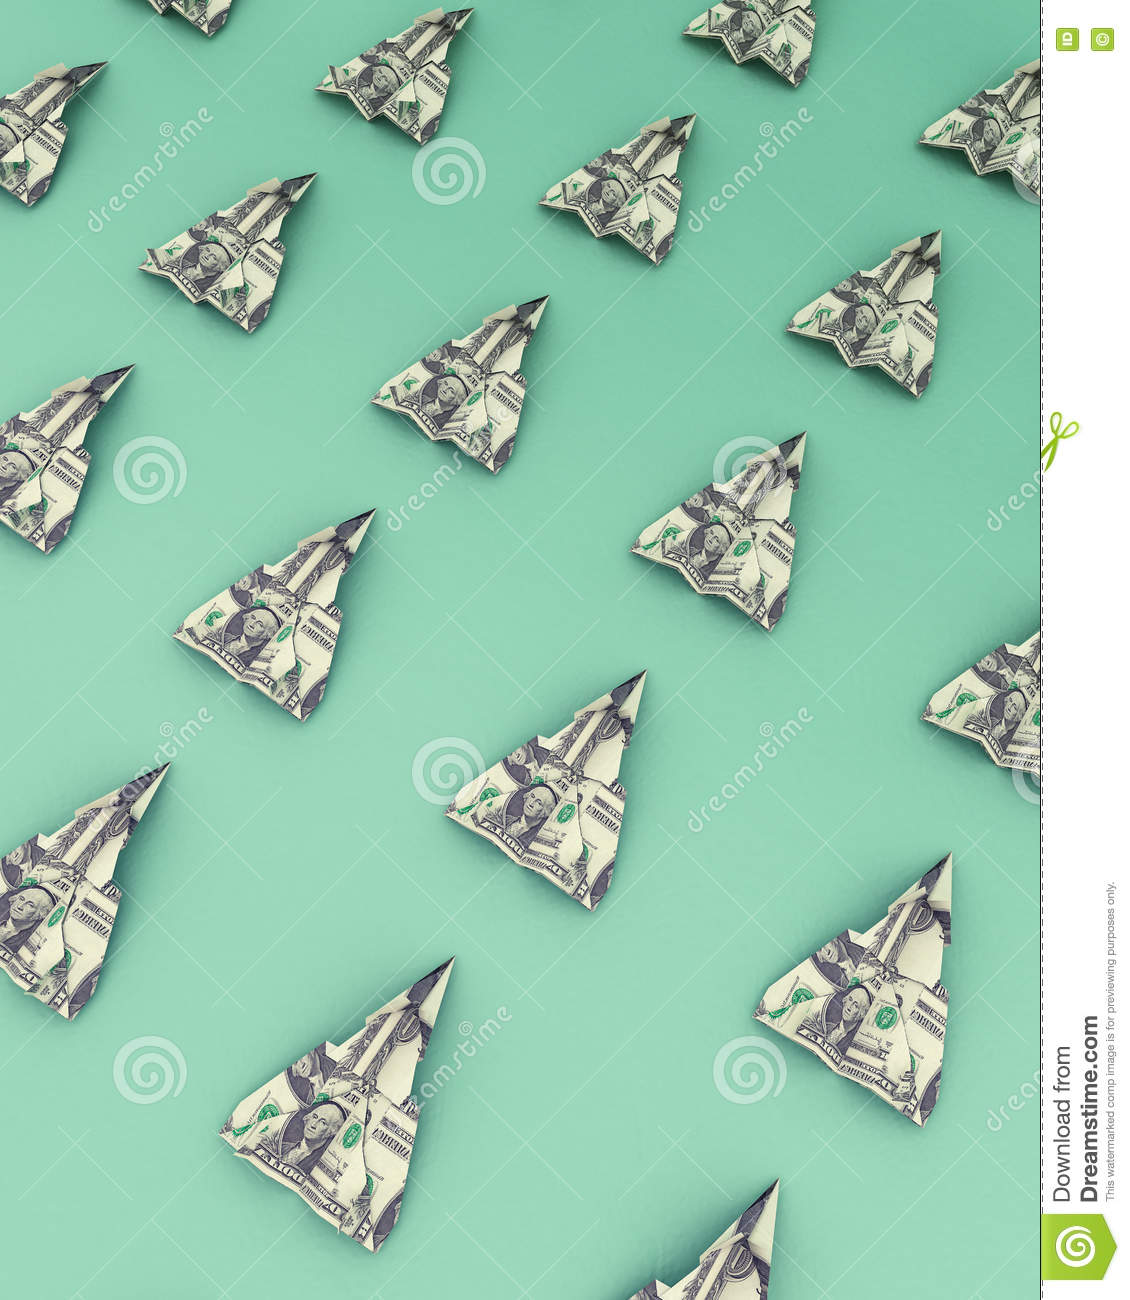 Paper Airplanes Made Out Of Money On The Green Background Stock